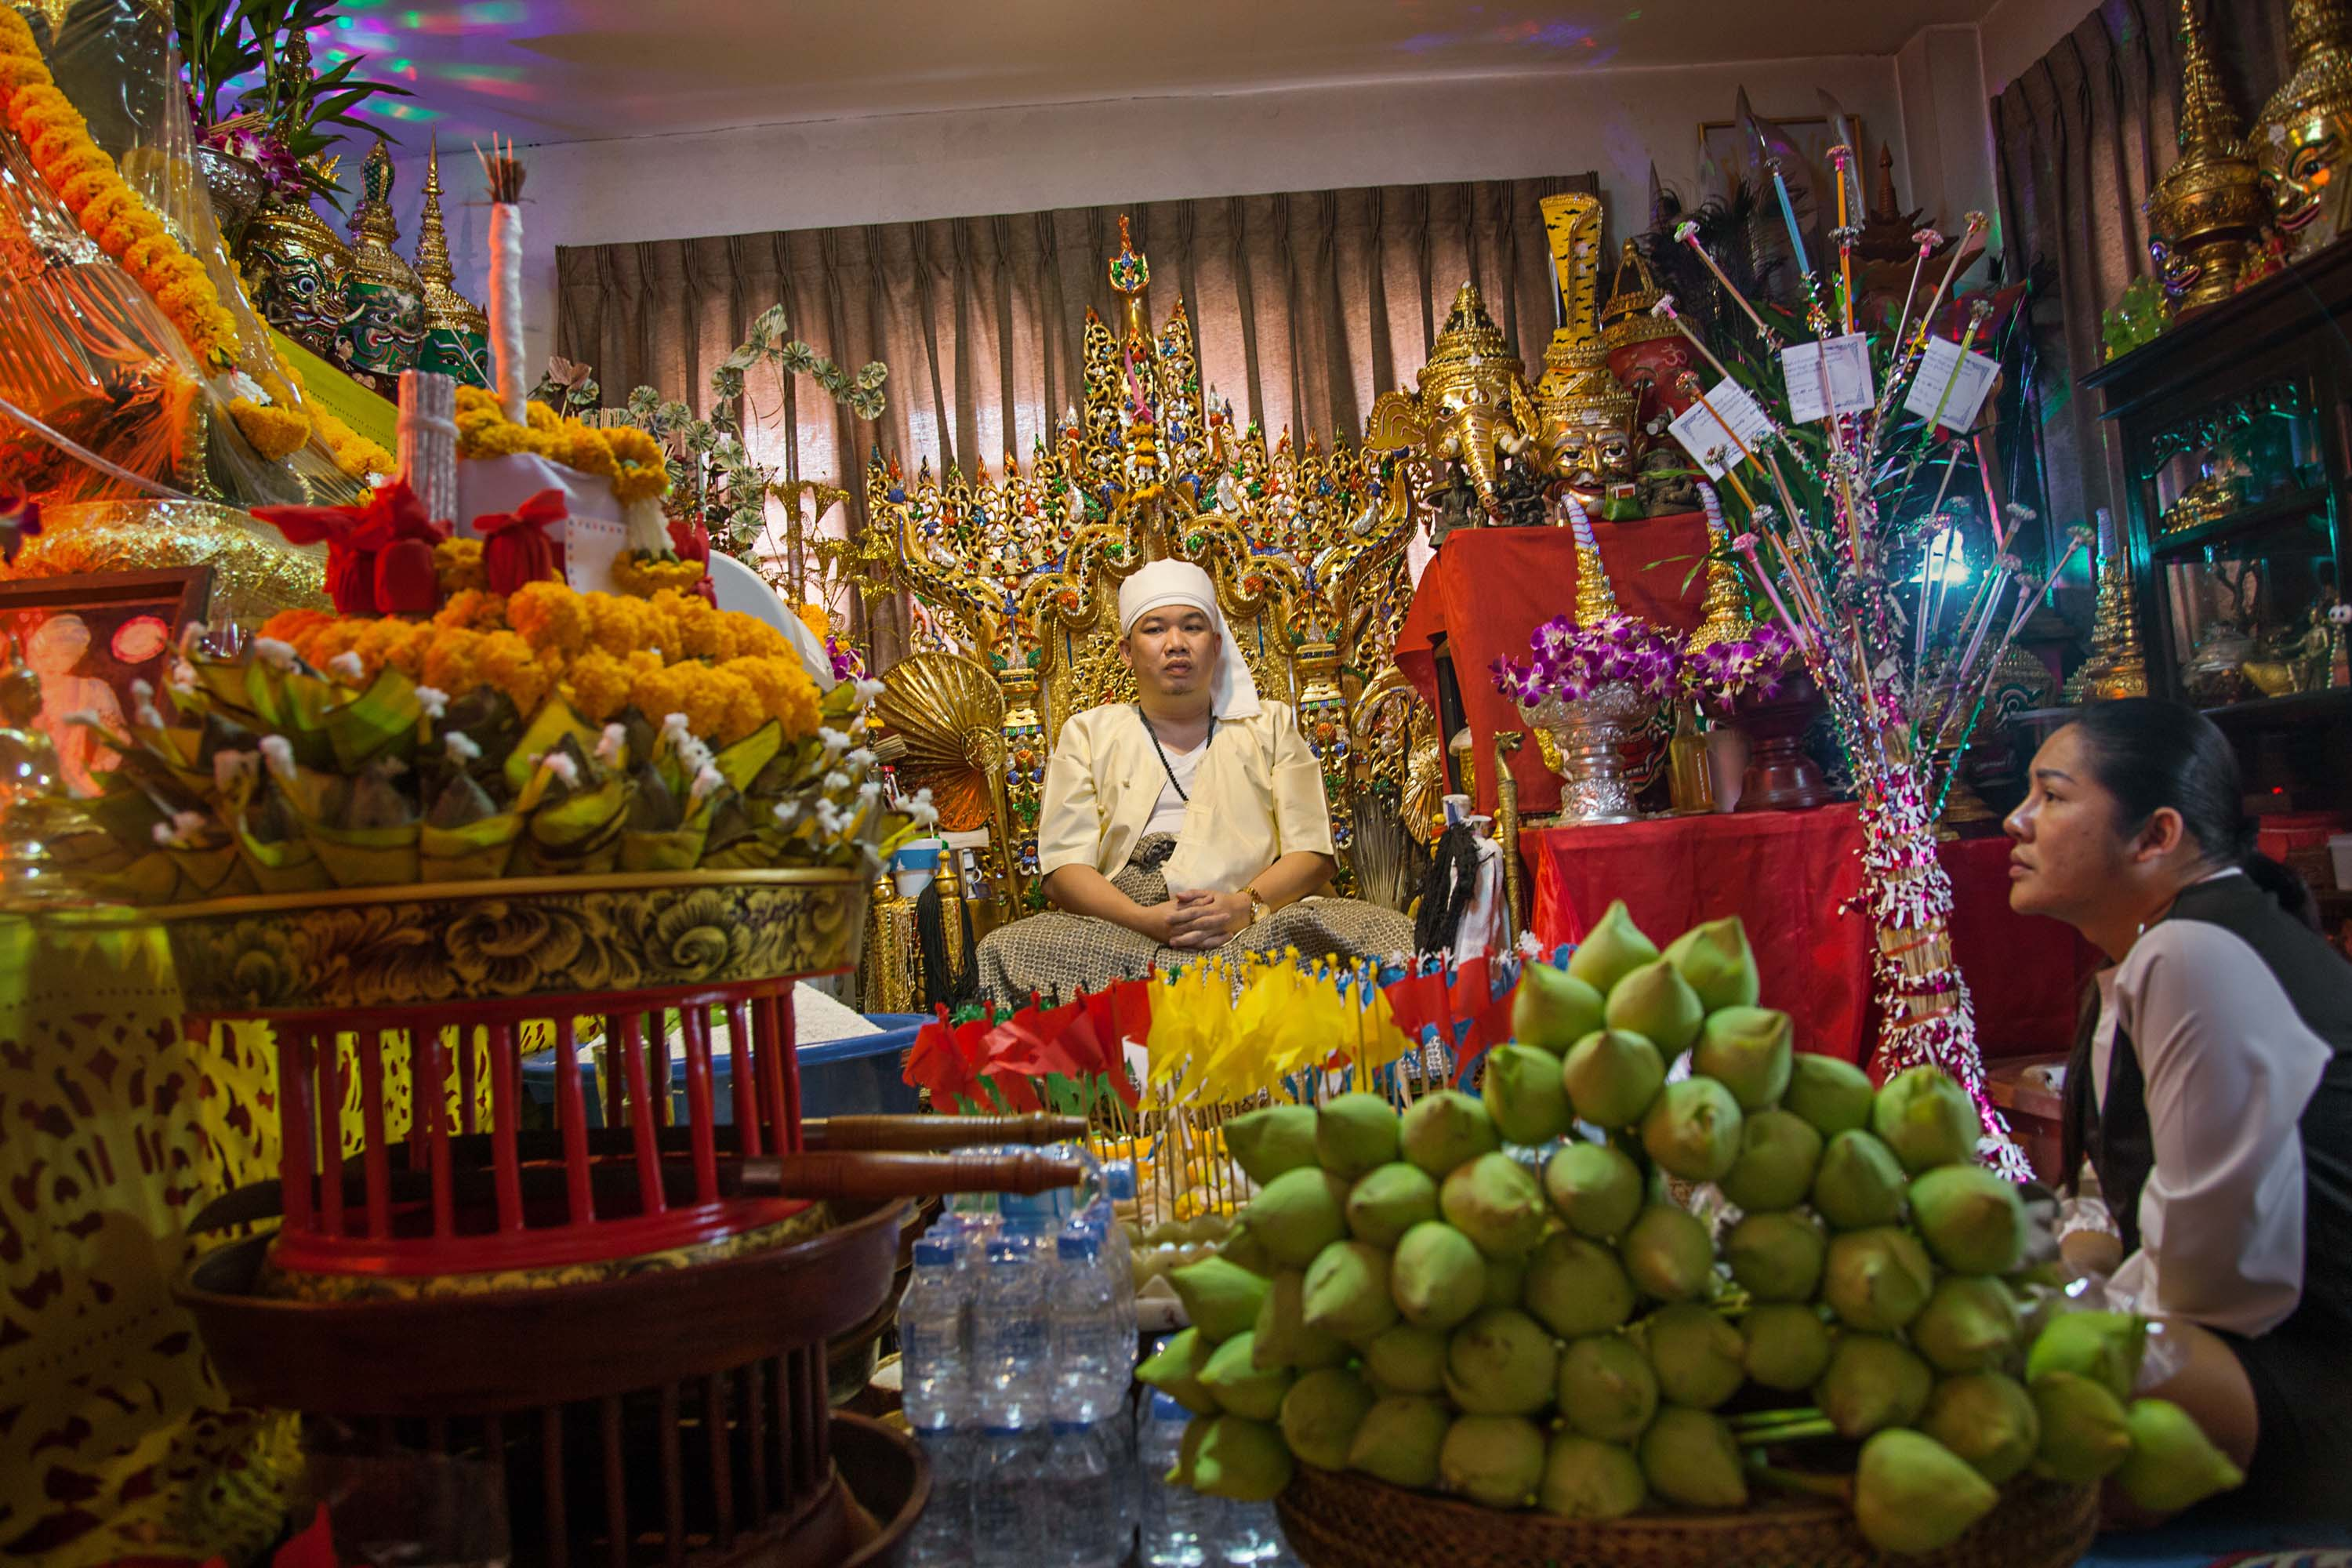 A well-known maa khii is commissioned to perform a series of rituals in the hope that the spirit who possesses him will bring a young man out of a coma. The young man's transgender girlfriend is intensely involved in the ritual. Chiang Mai.